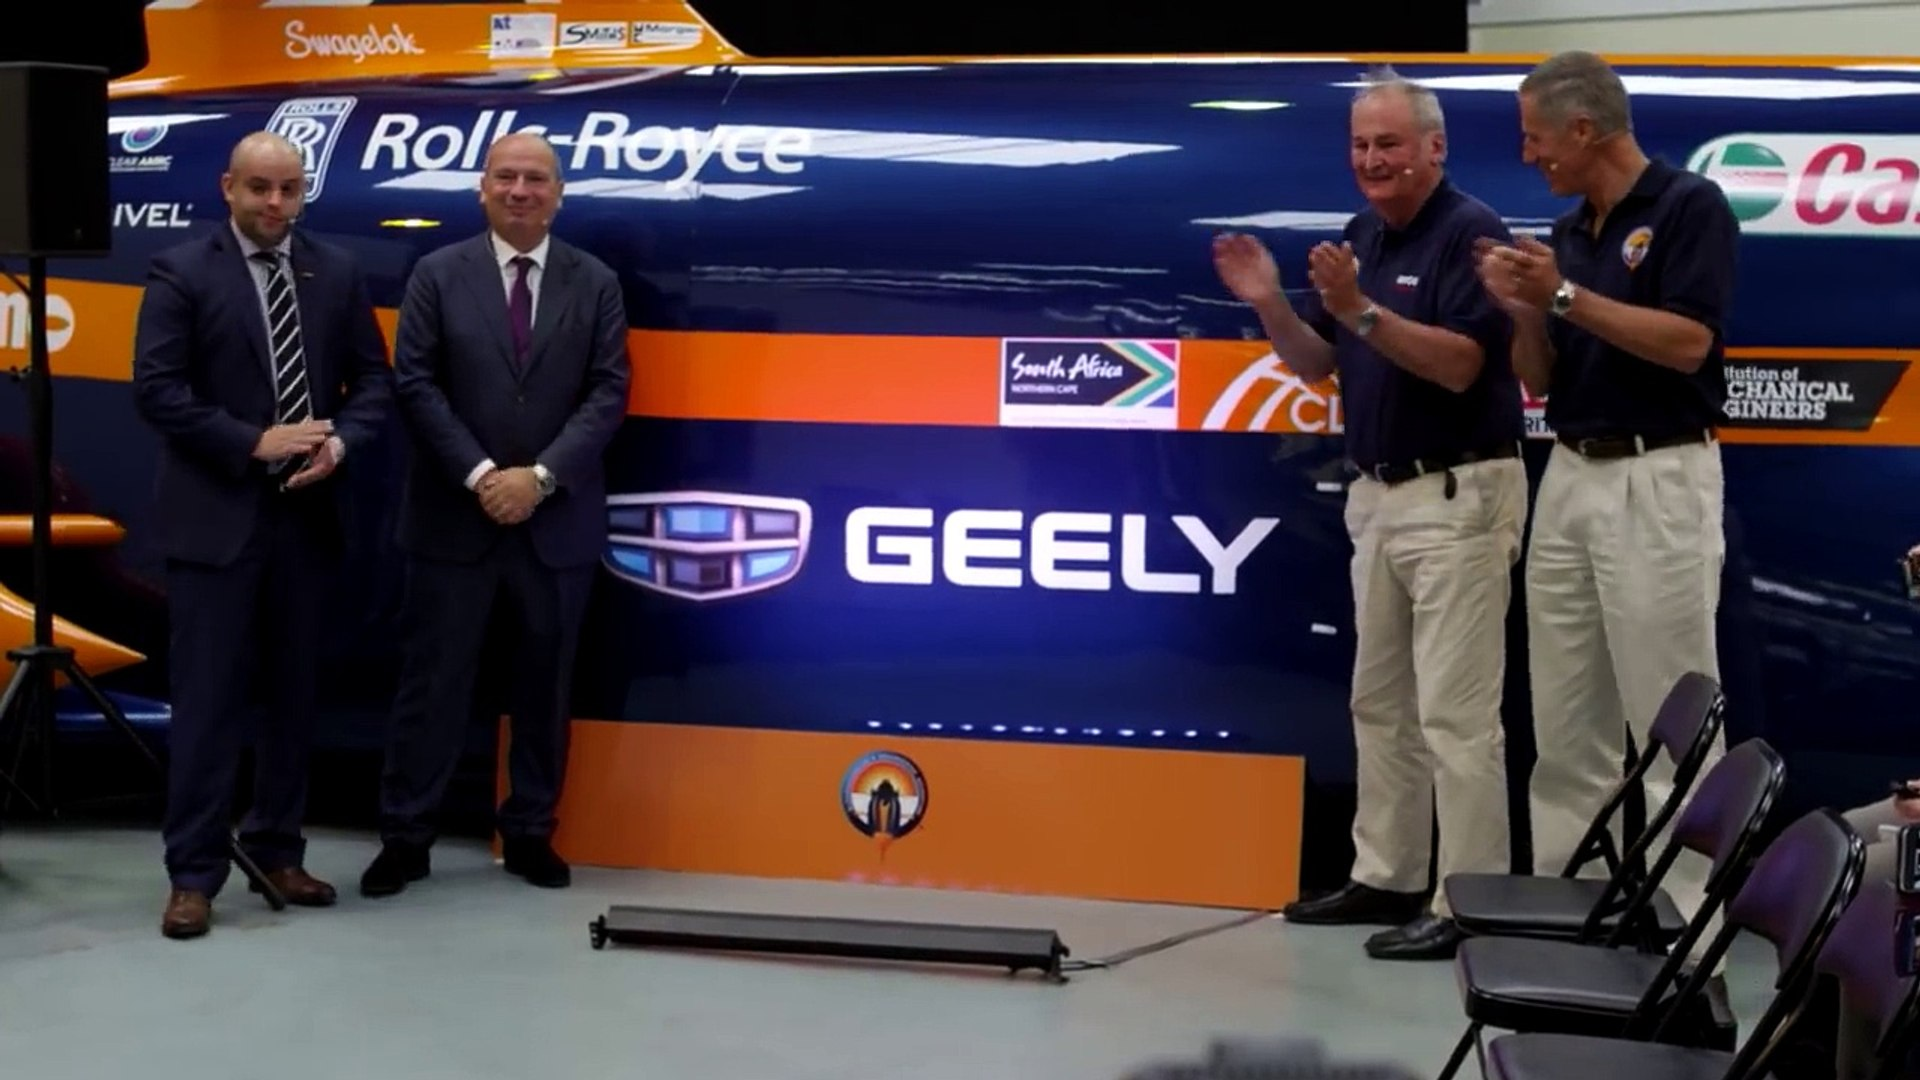 Geely announced as new lead partner for The BLOODHOUND Project-Z3e6dvKqUjM